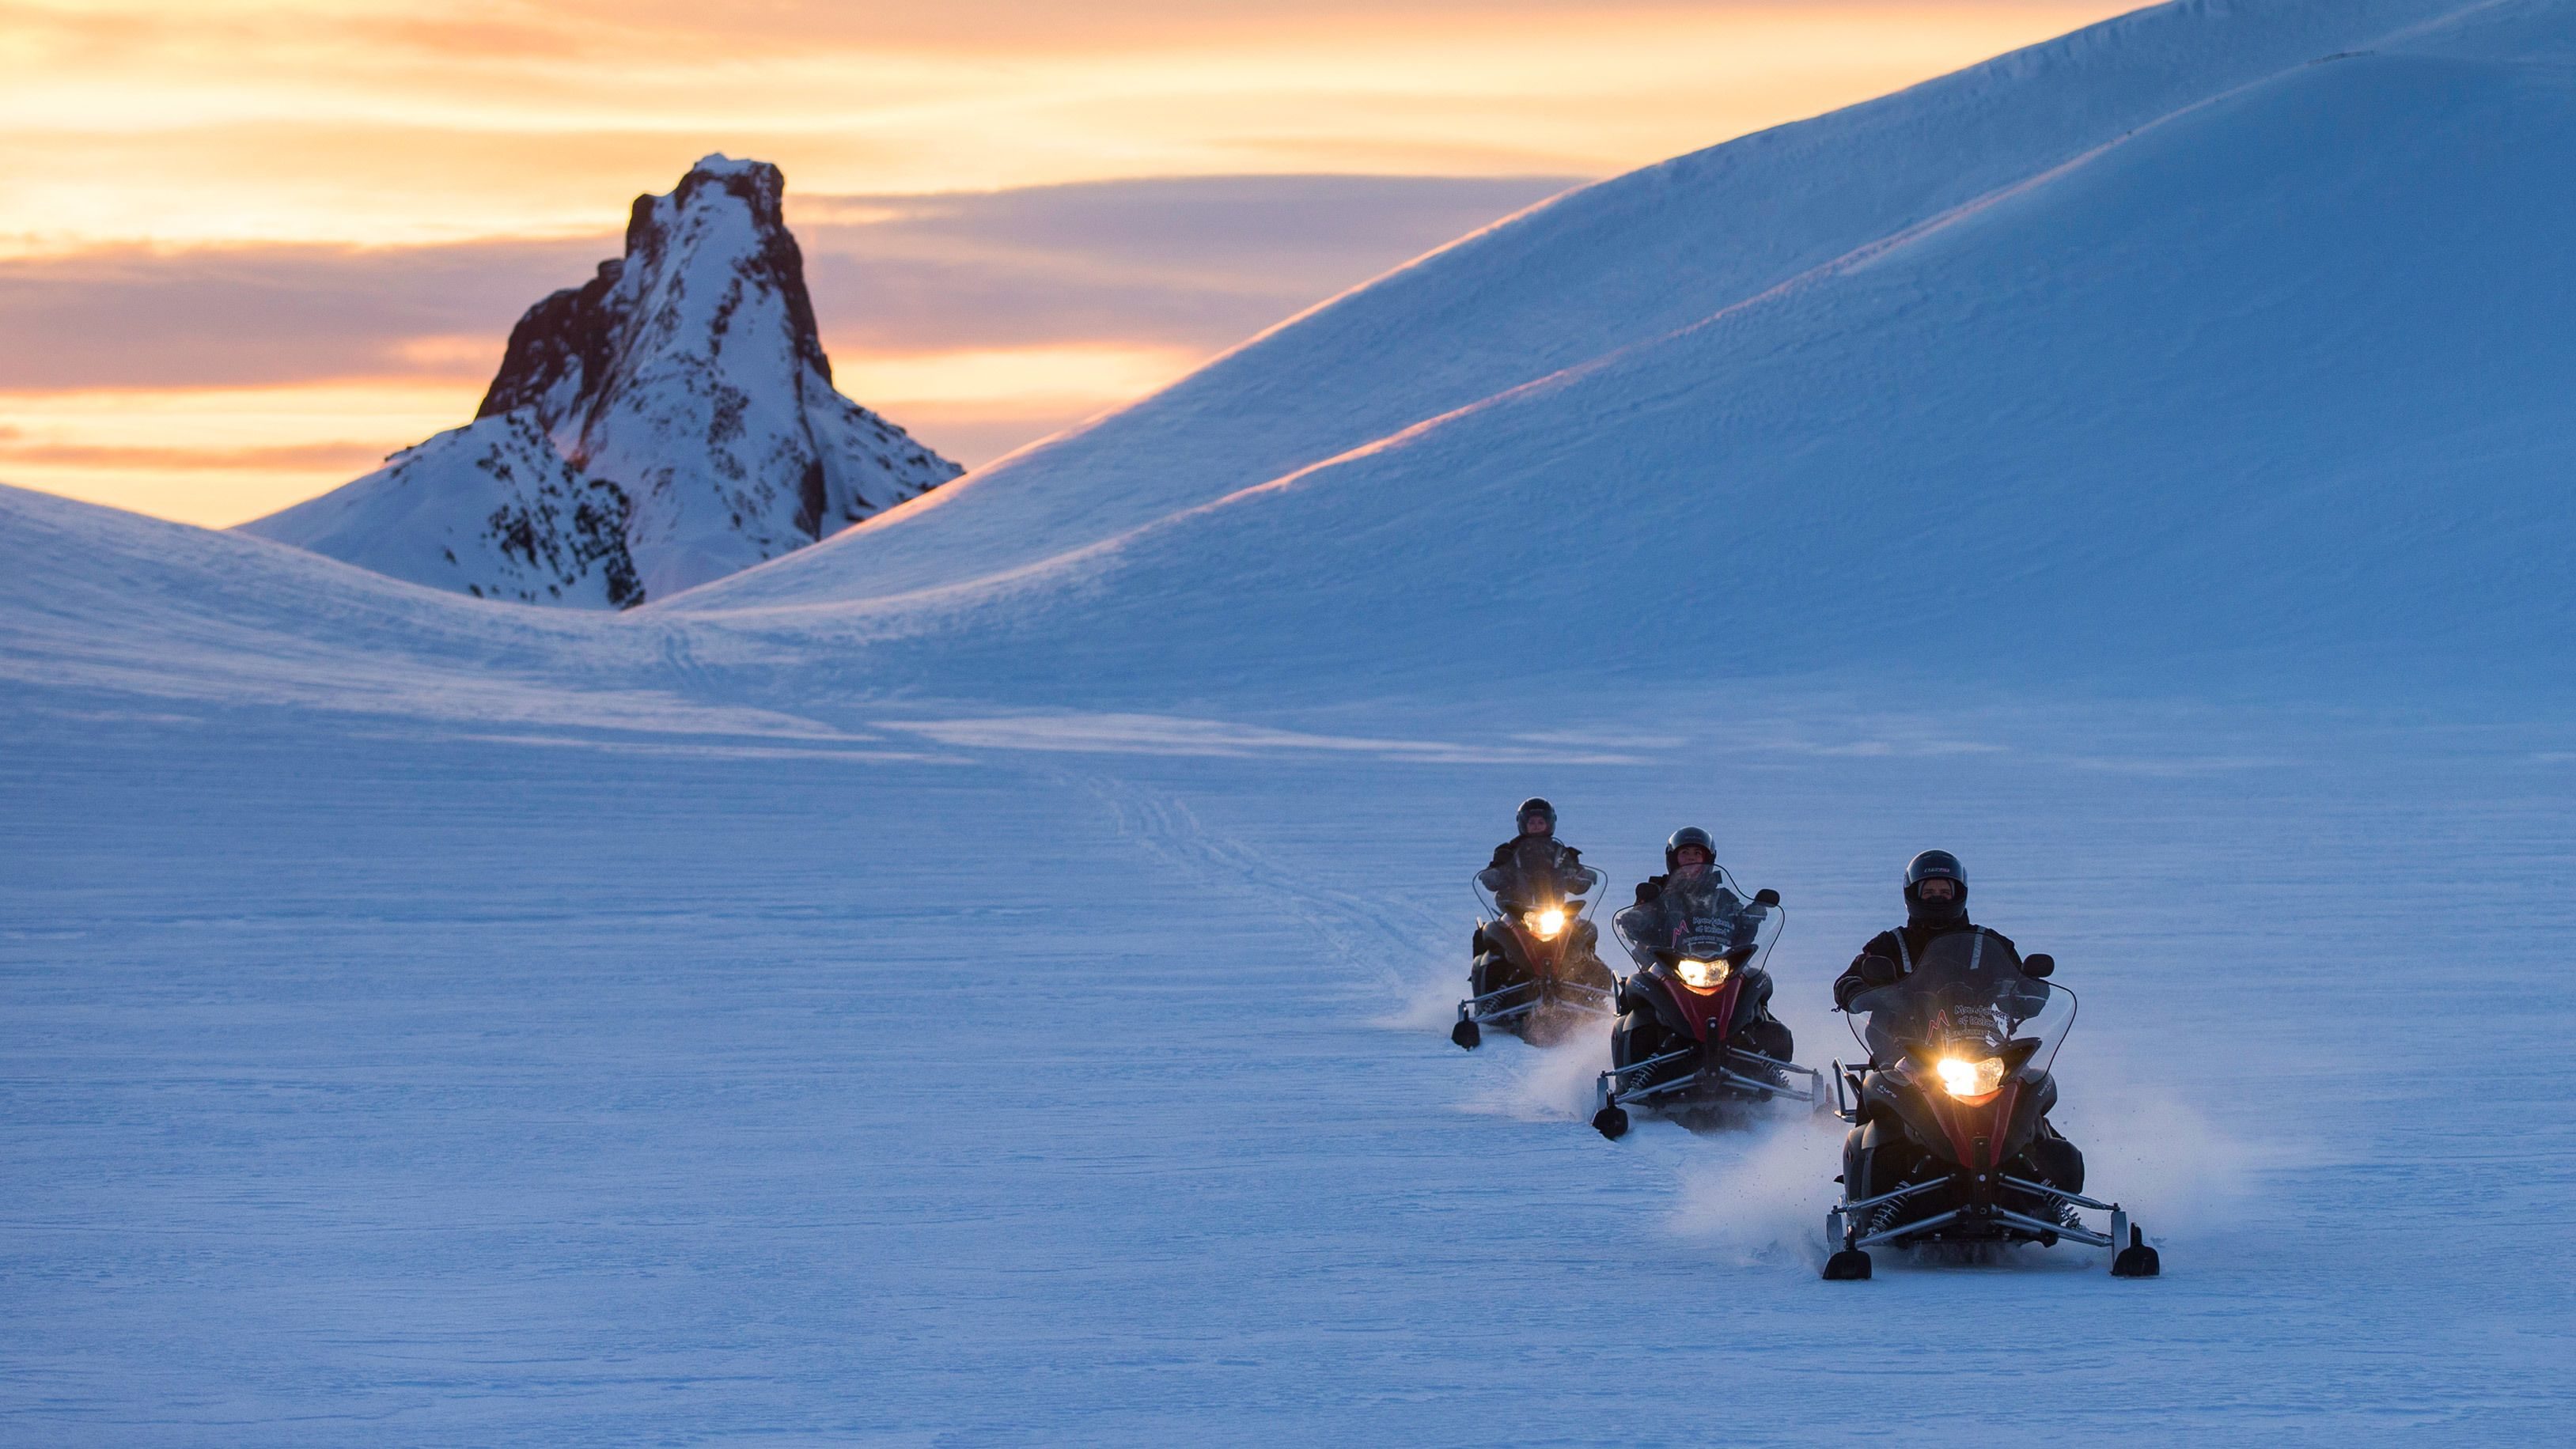 Snowmobilers in the mountains